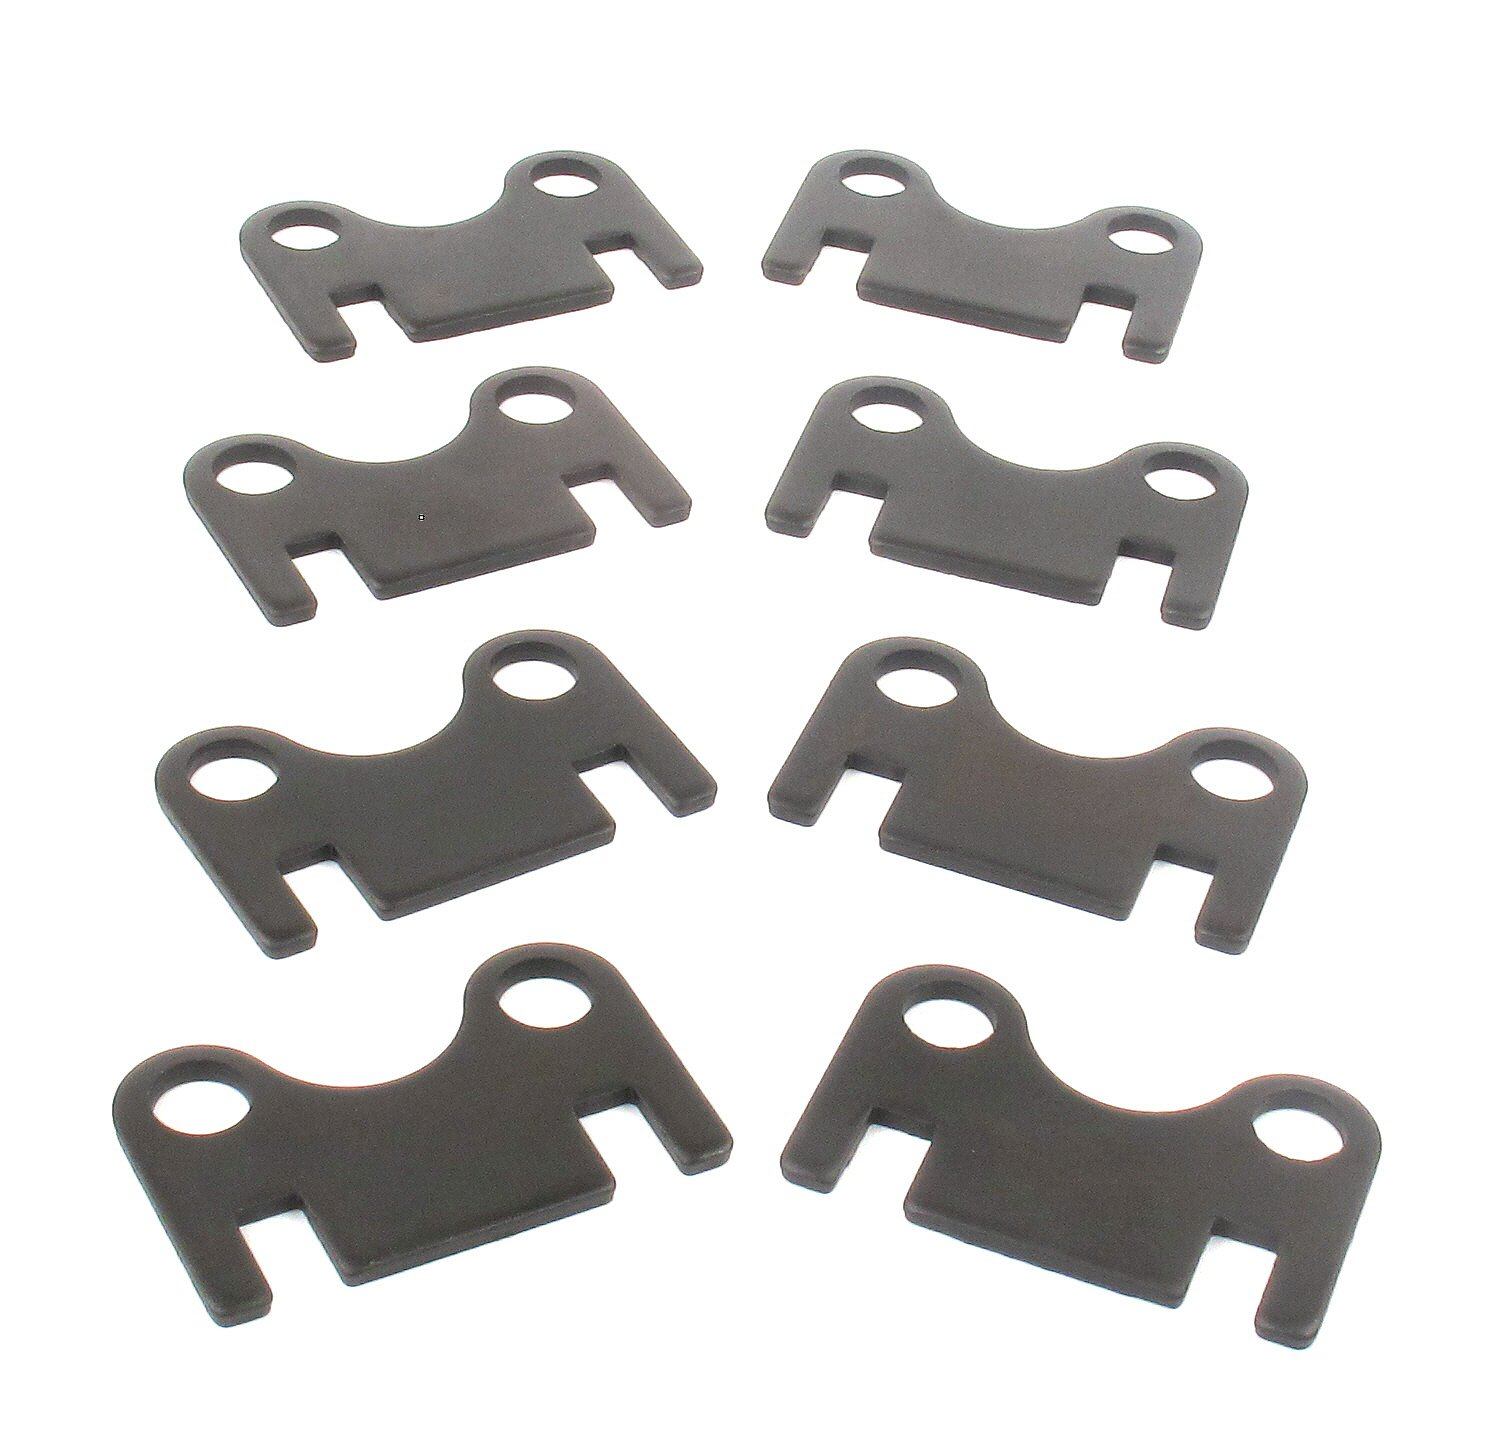 Box of 8 Small Block Chevy 5//16 Flat 8 Pack Elgin GP100S Push Rod Guide Plate